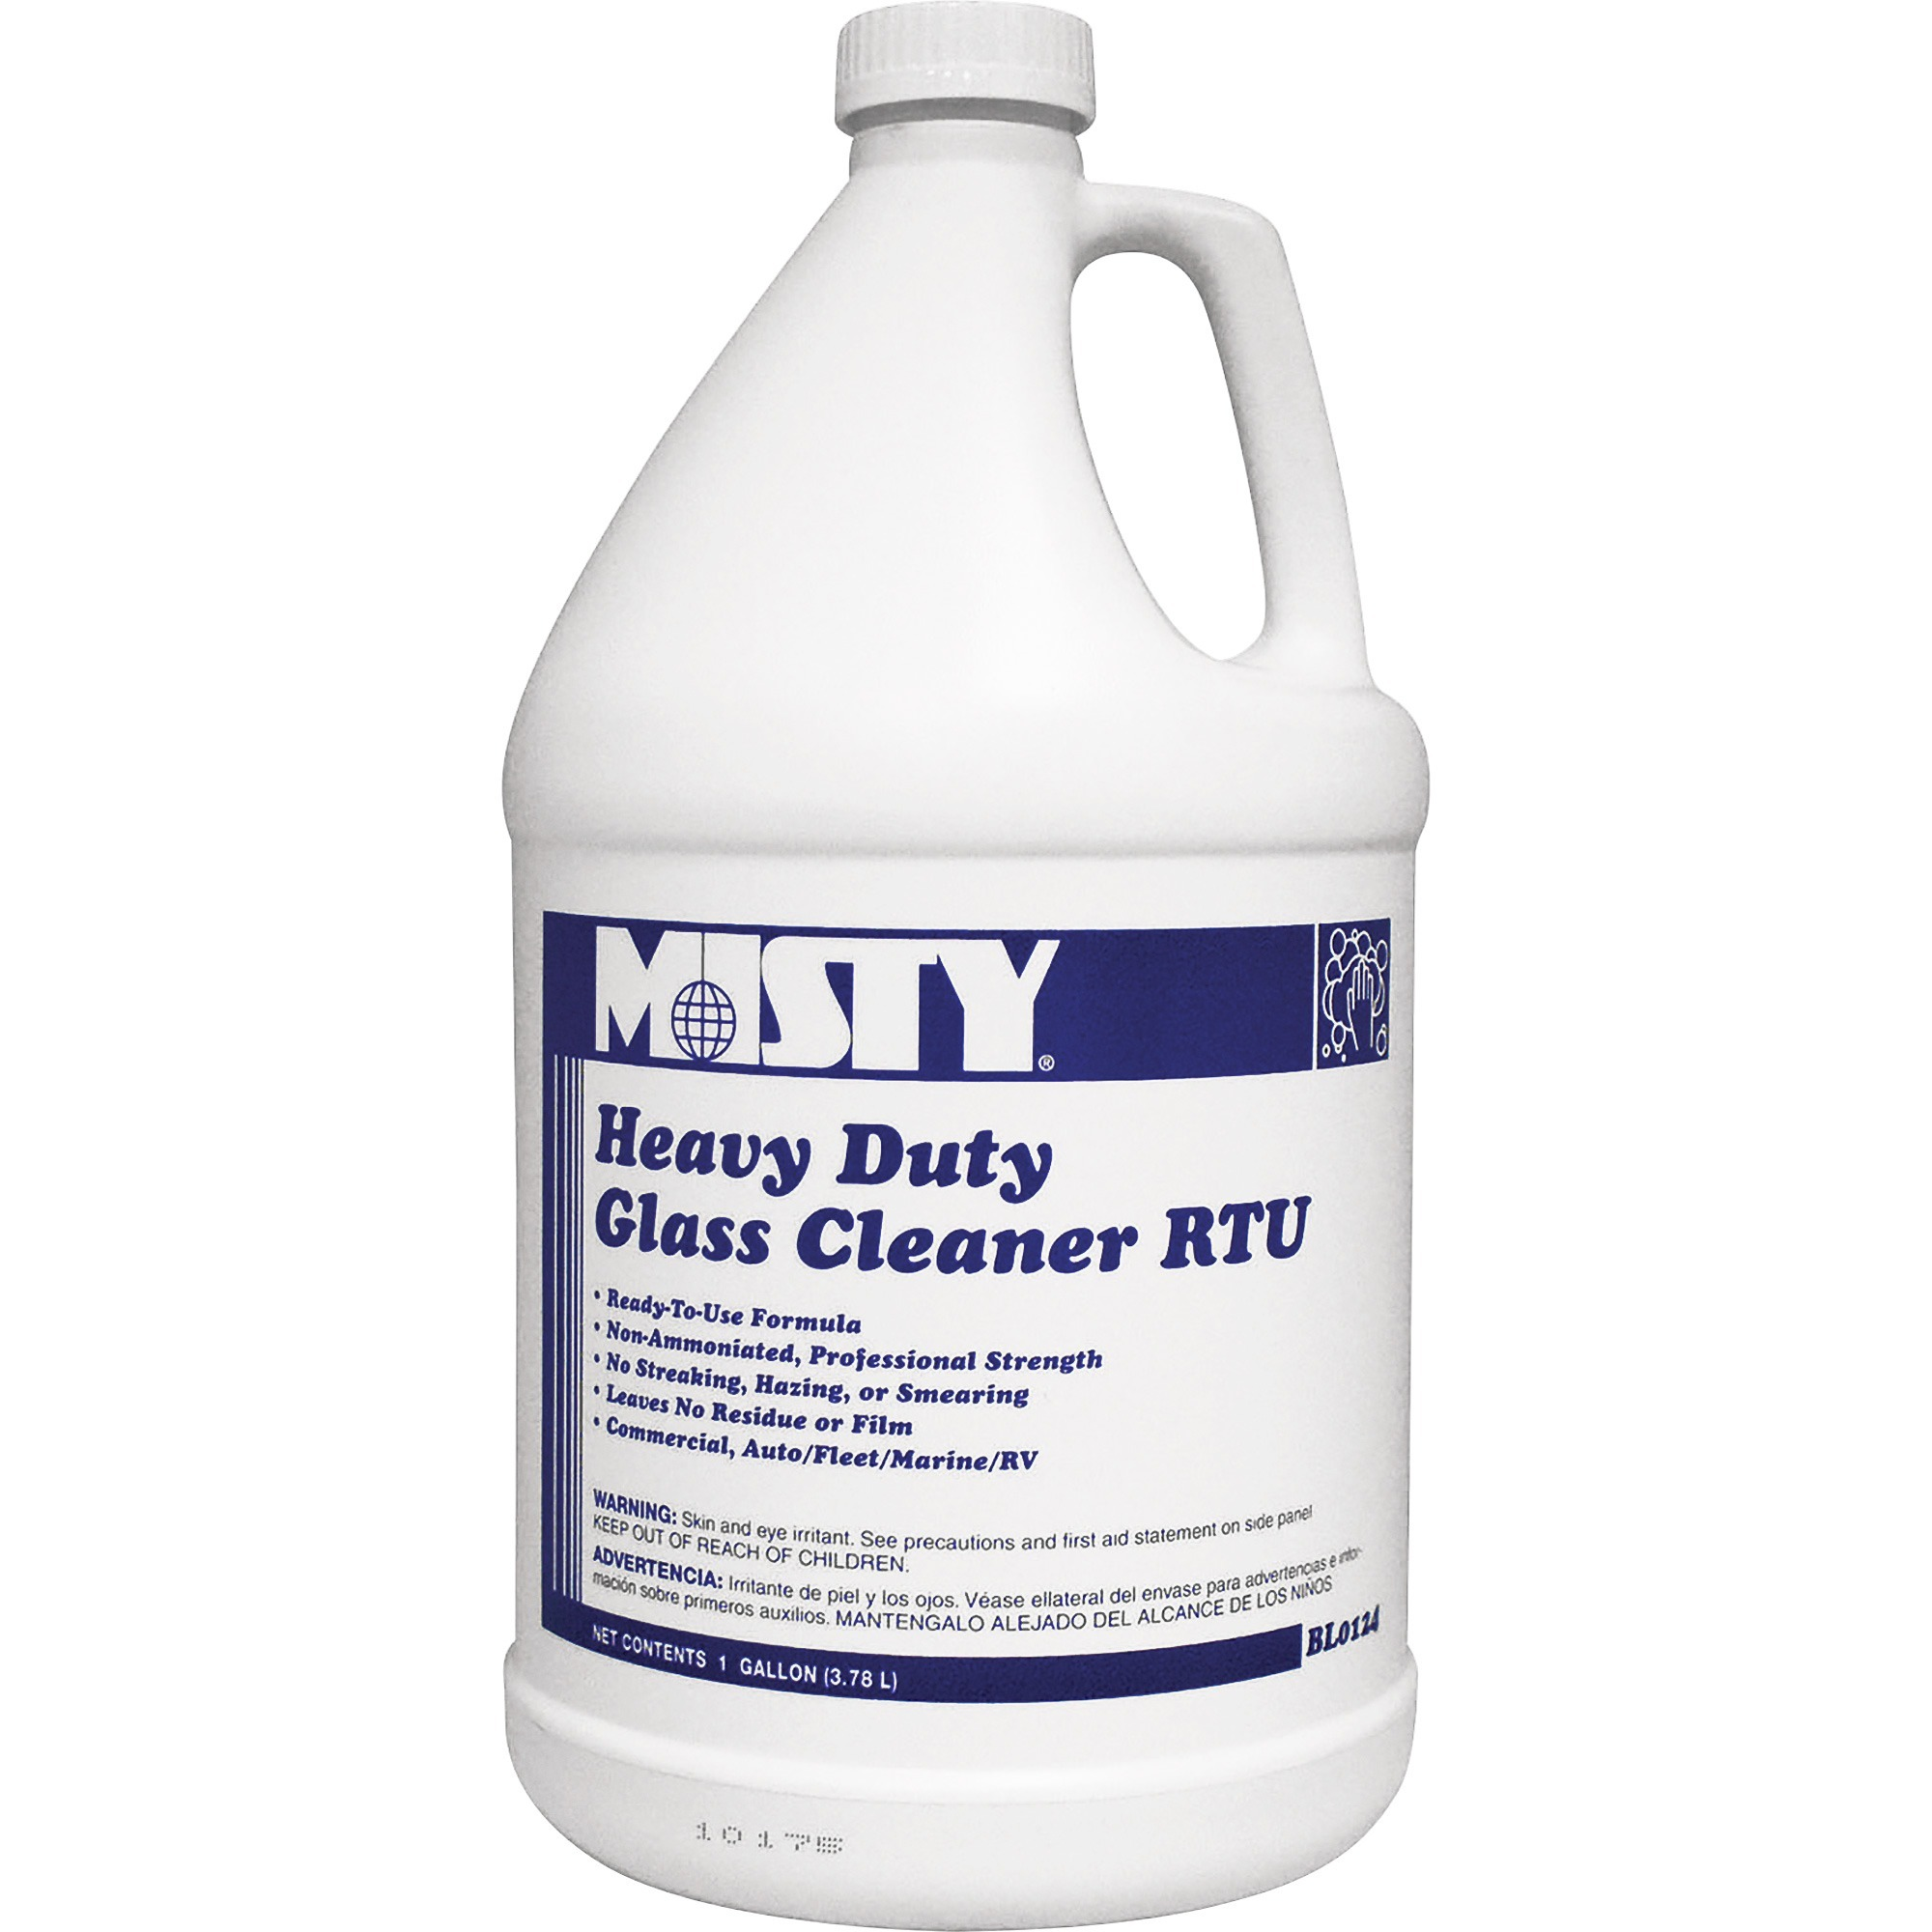 MISTY, AMR1001499CT, Heavy Duty Glass Cleaner Concentrate, 4 / Carton, Aqua Blue